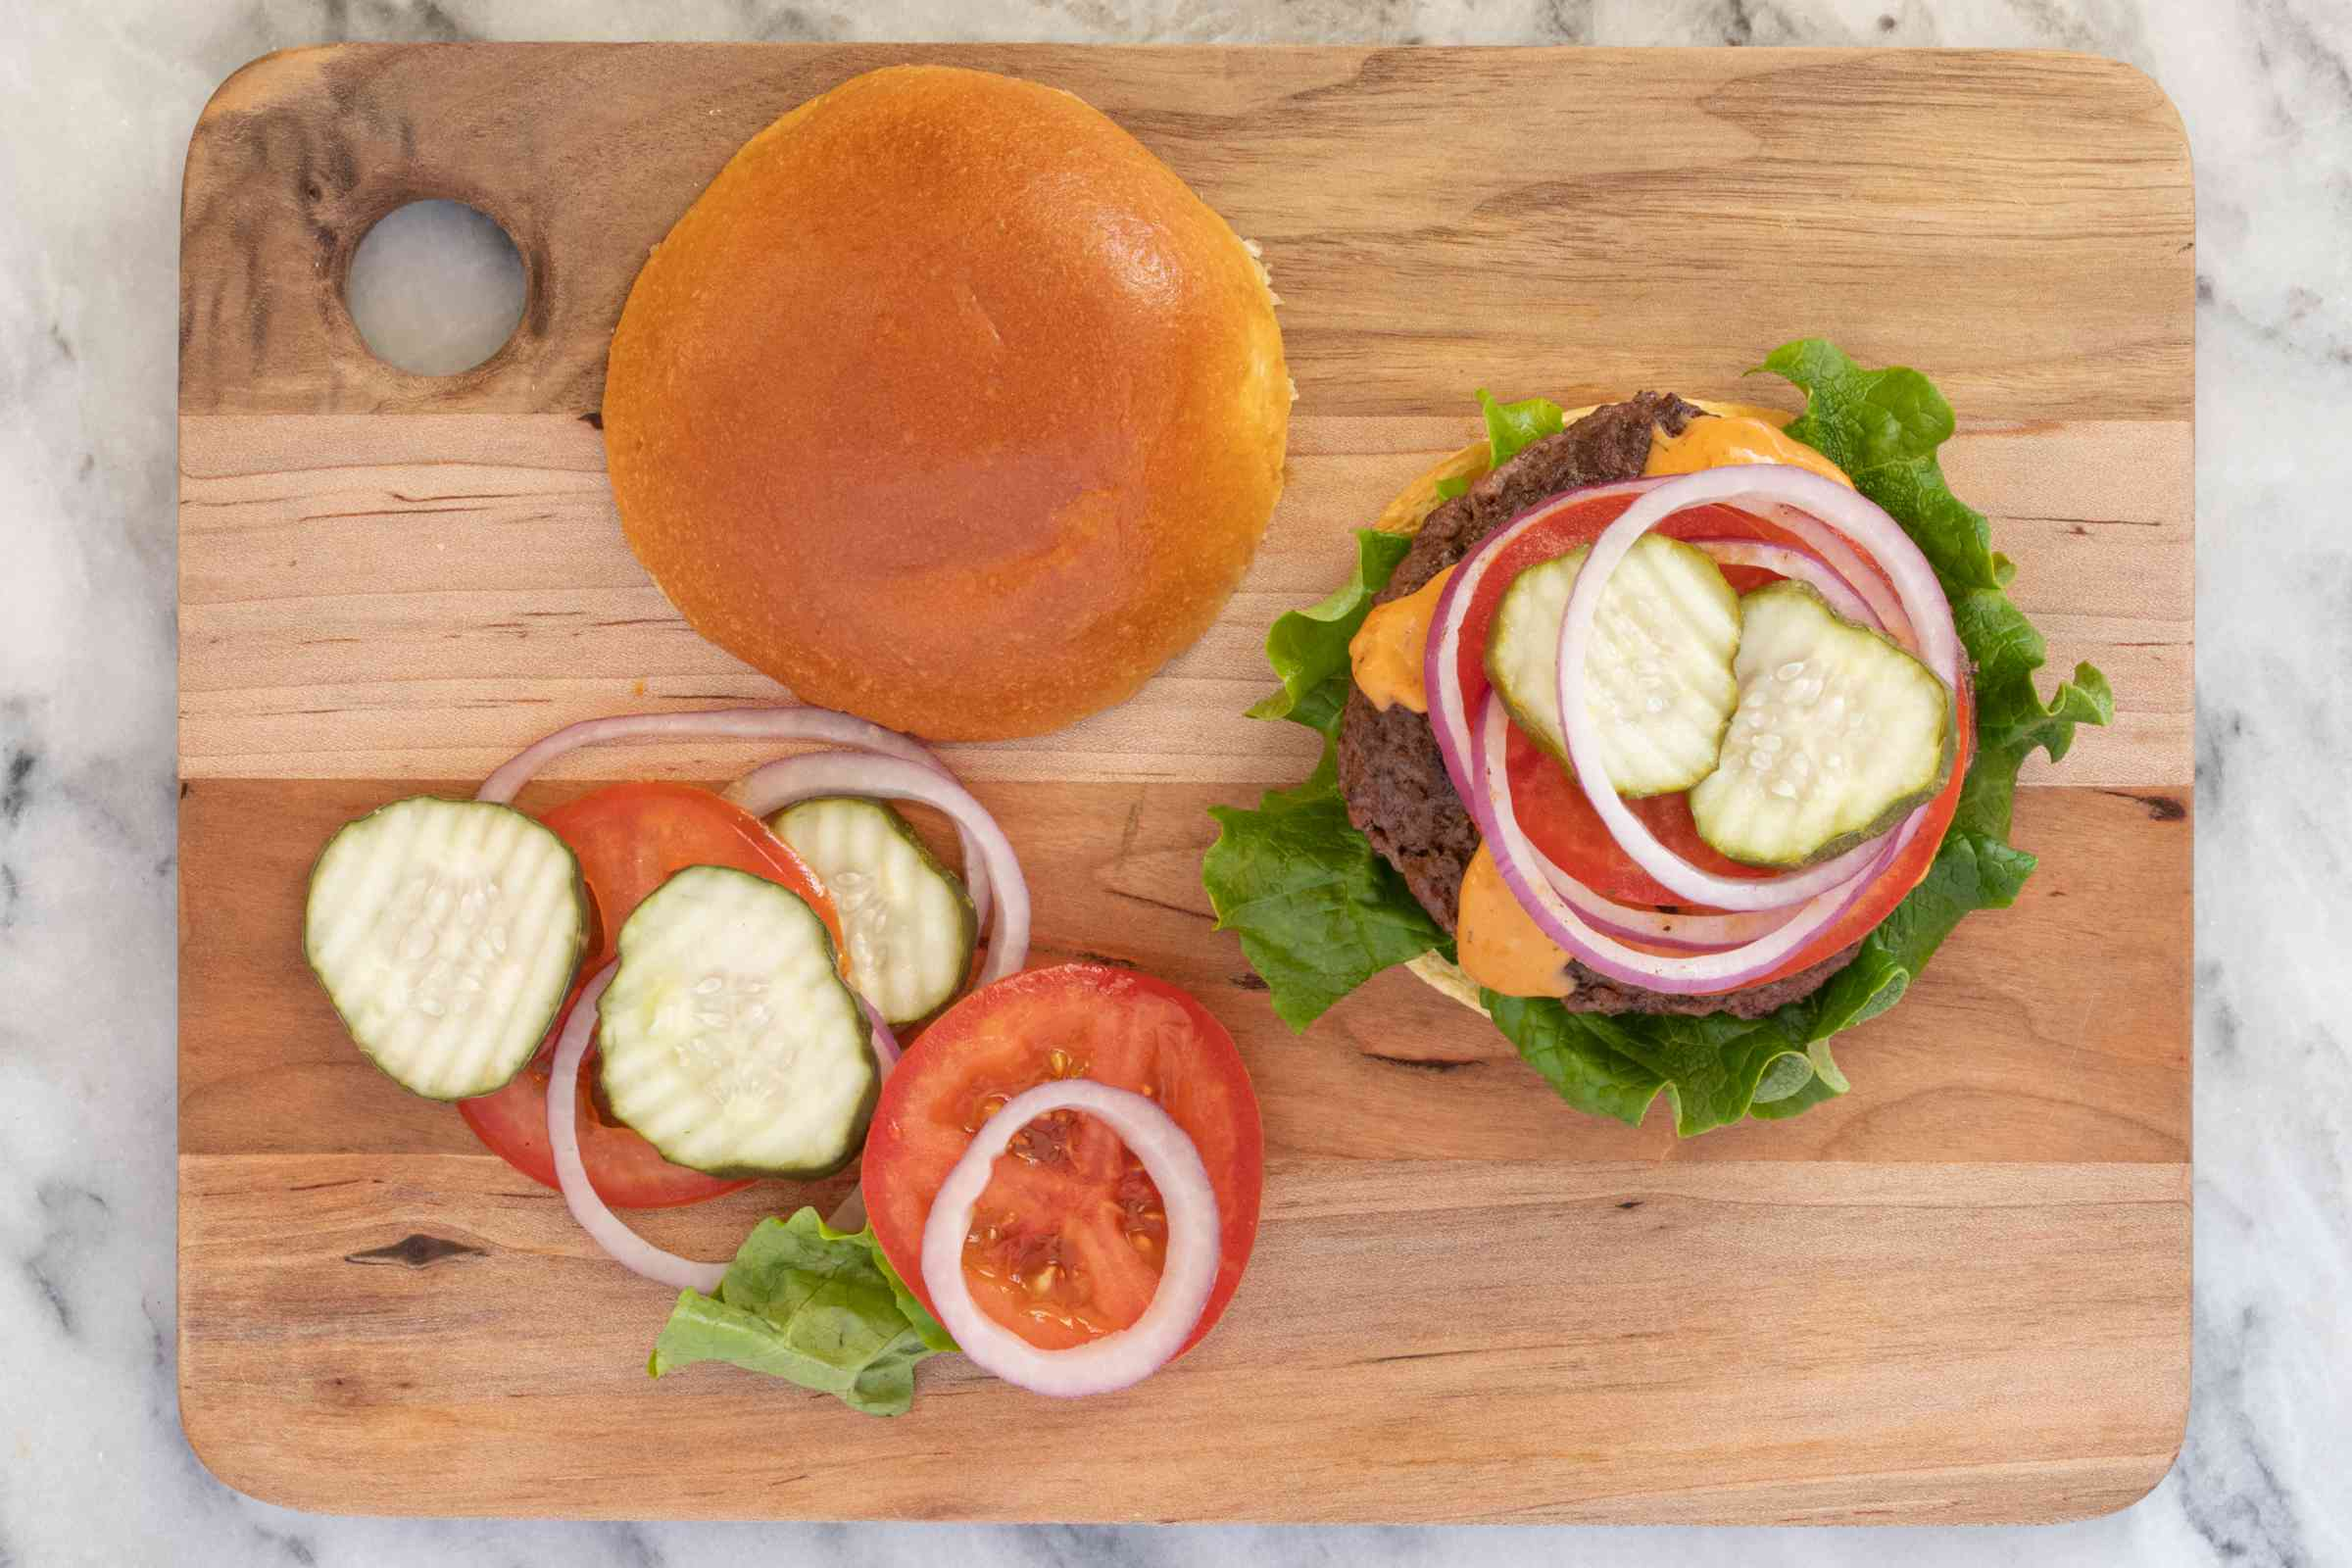 Assembly of one bison burger with bun and toppings.